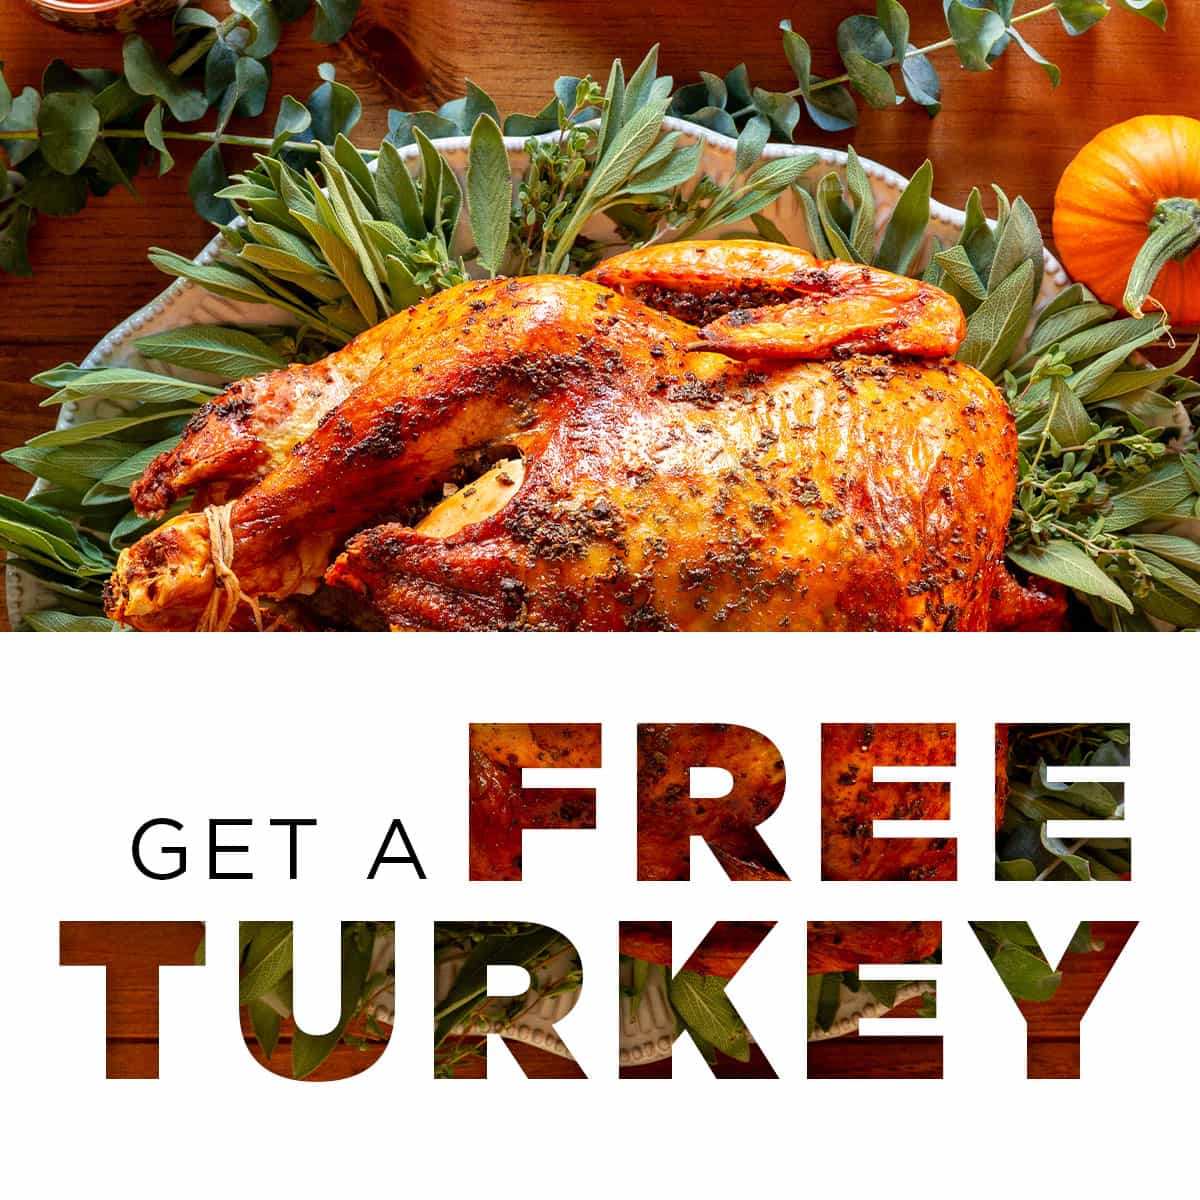 ButcherBox Deal: FREE Turkey with Subscription!